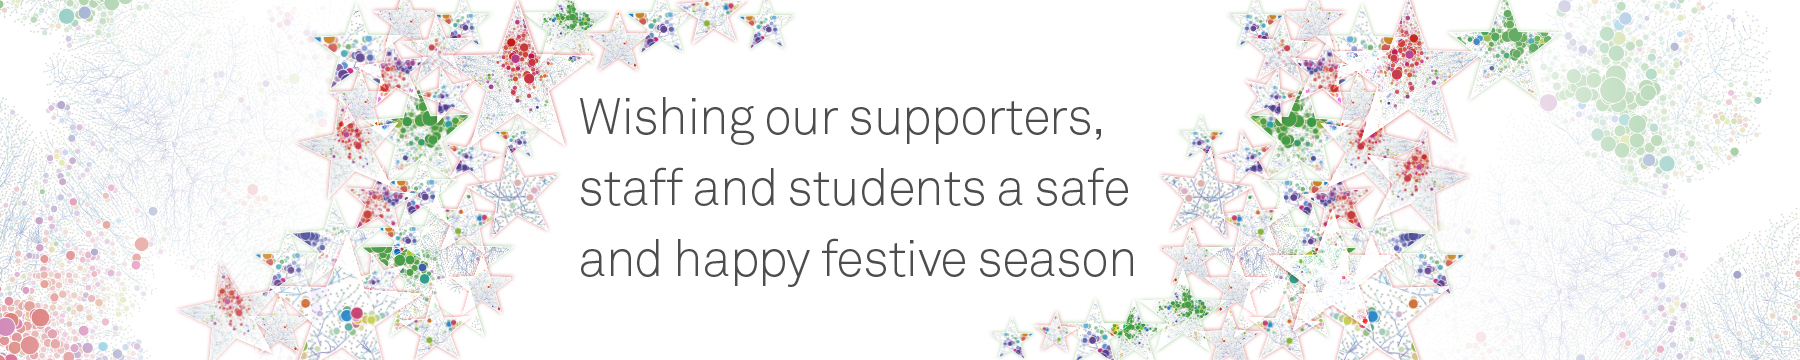 Wishing our supporters, staff and students a safe and happy festive season